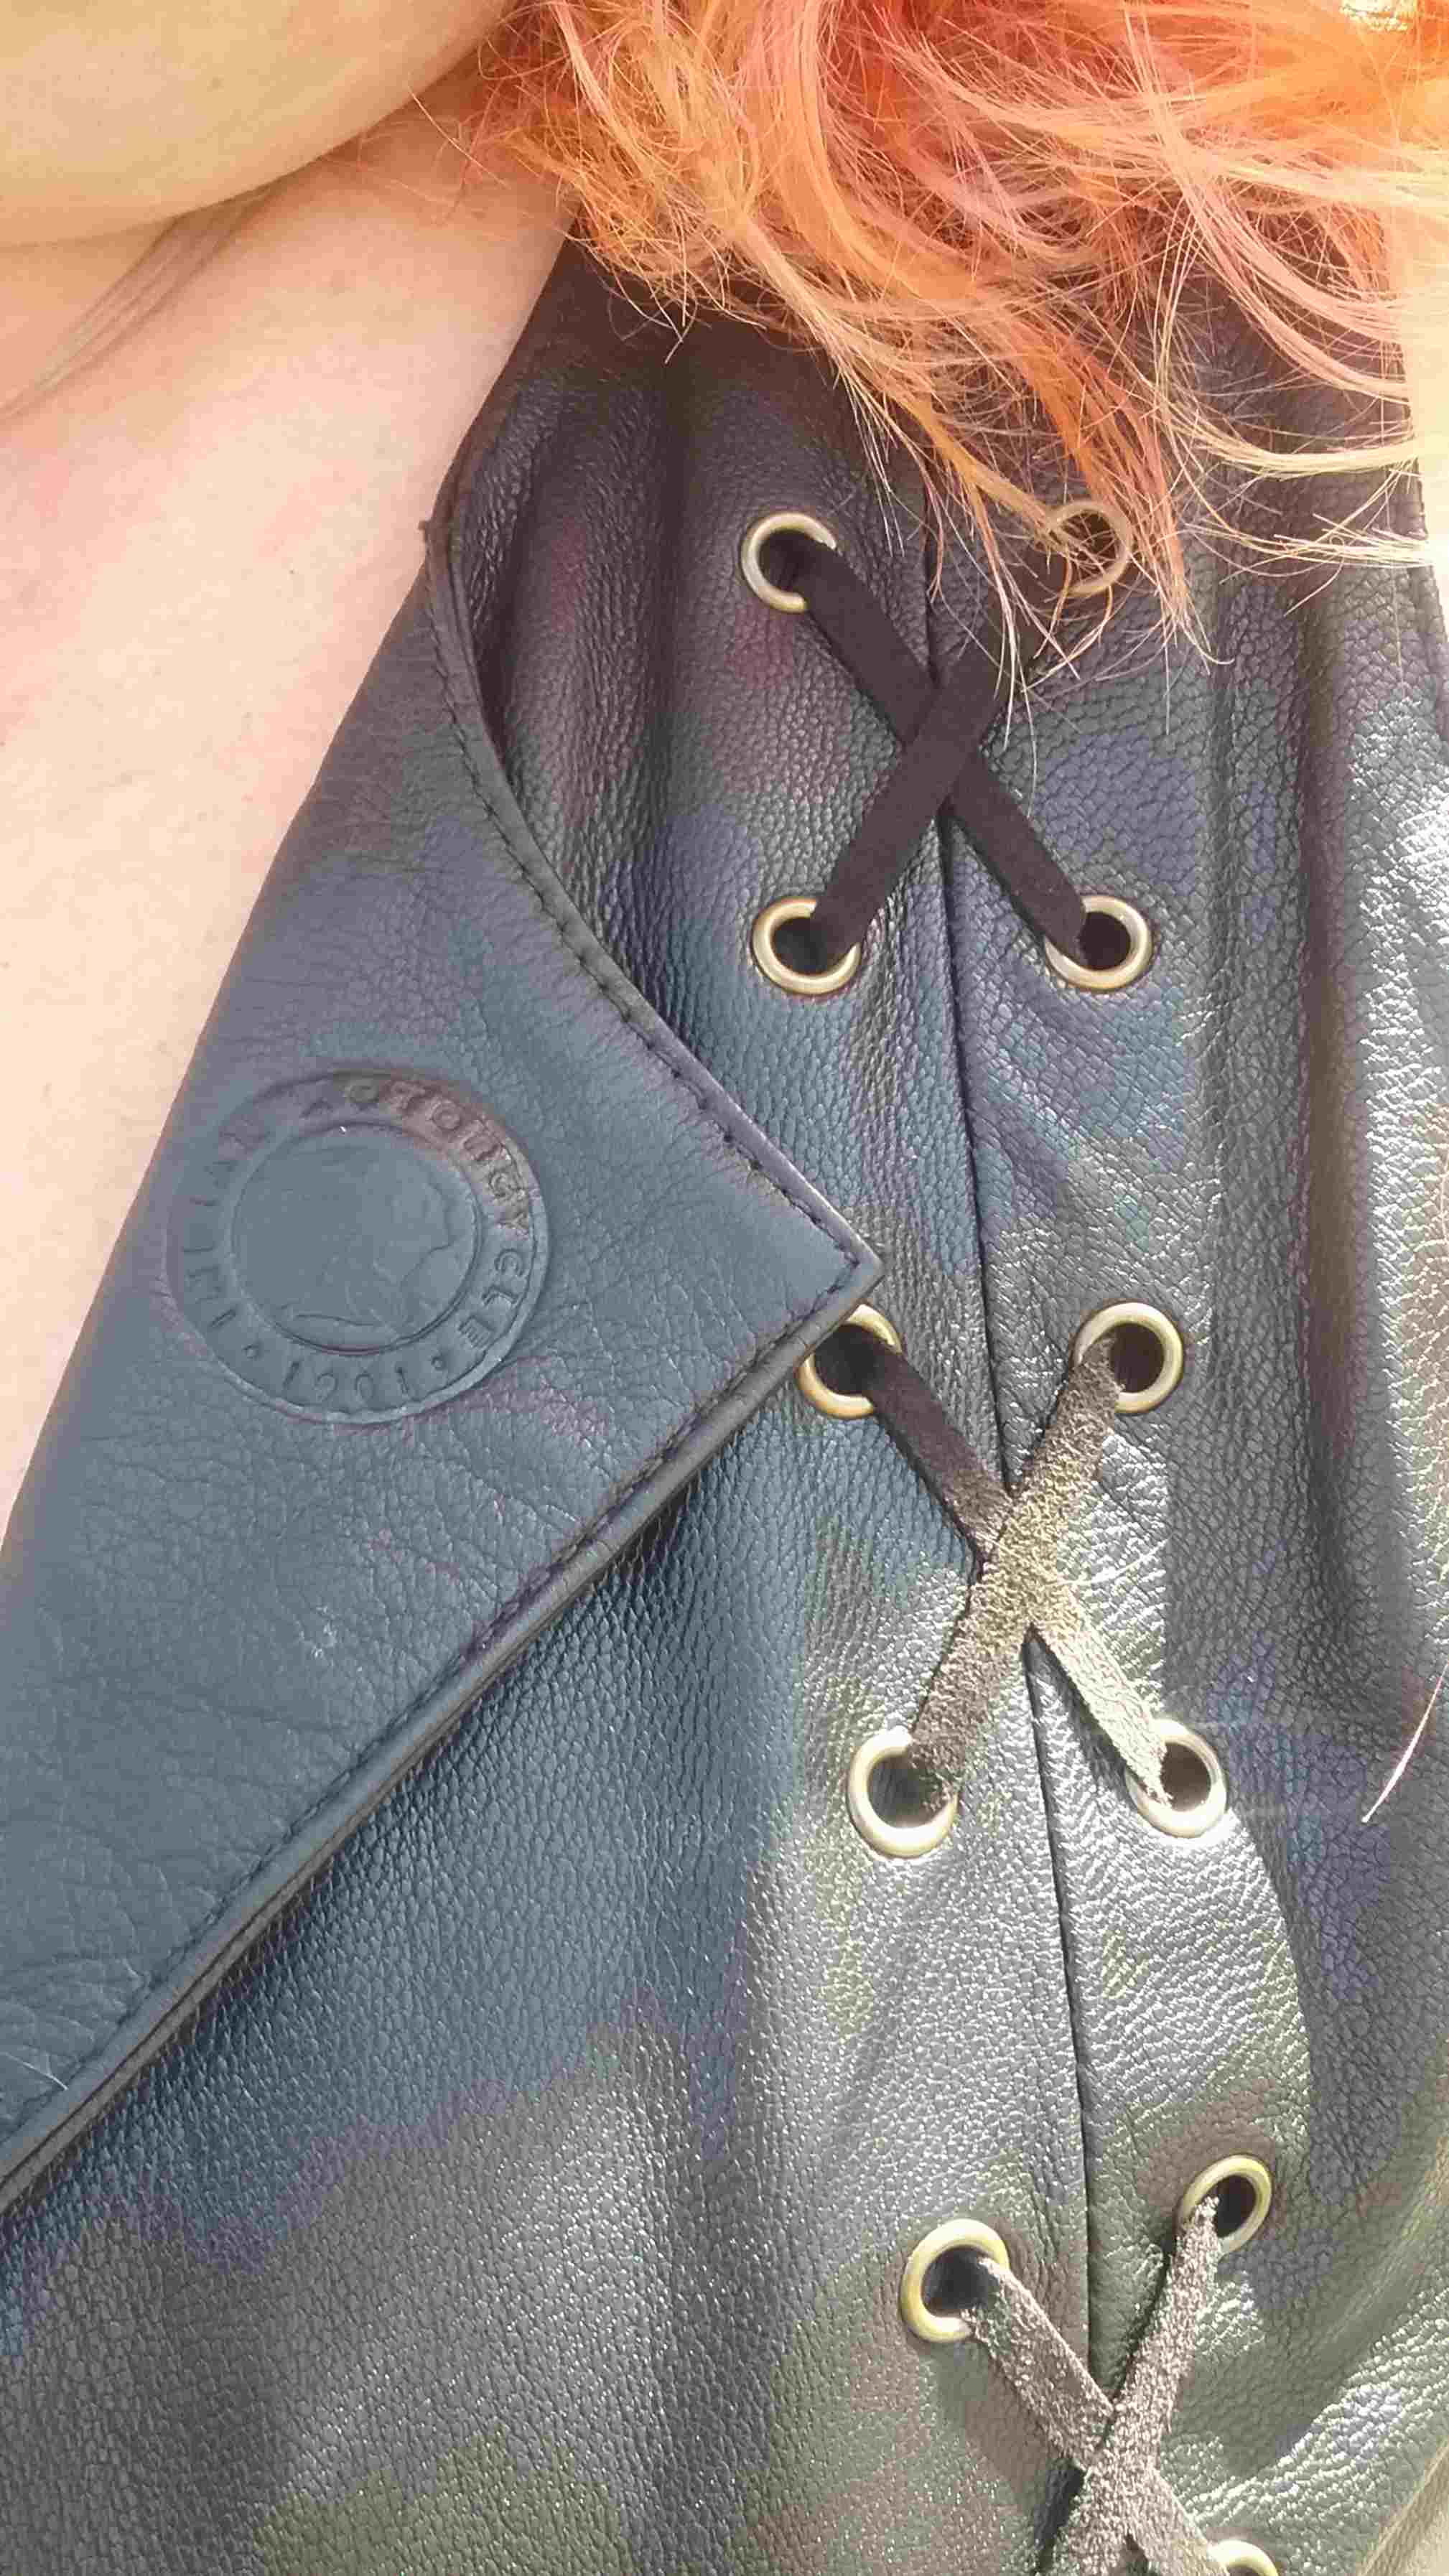 Indian Women's Review, A close up view of criss crossed black leather lacing through antiqued brass eyelets on a leather motorcycle vest, the vest shows a stamped Indian Motorcycle Logo on a trendy leather collar, the woman's red hair flows over the shoulders of the vest.